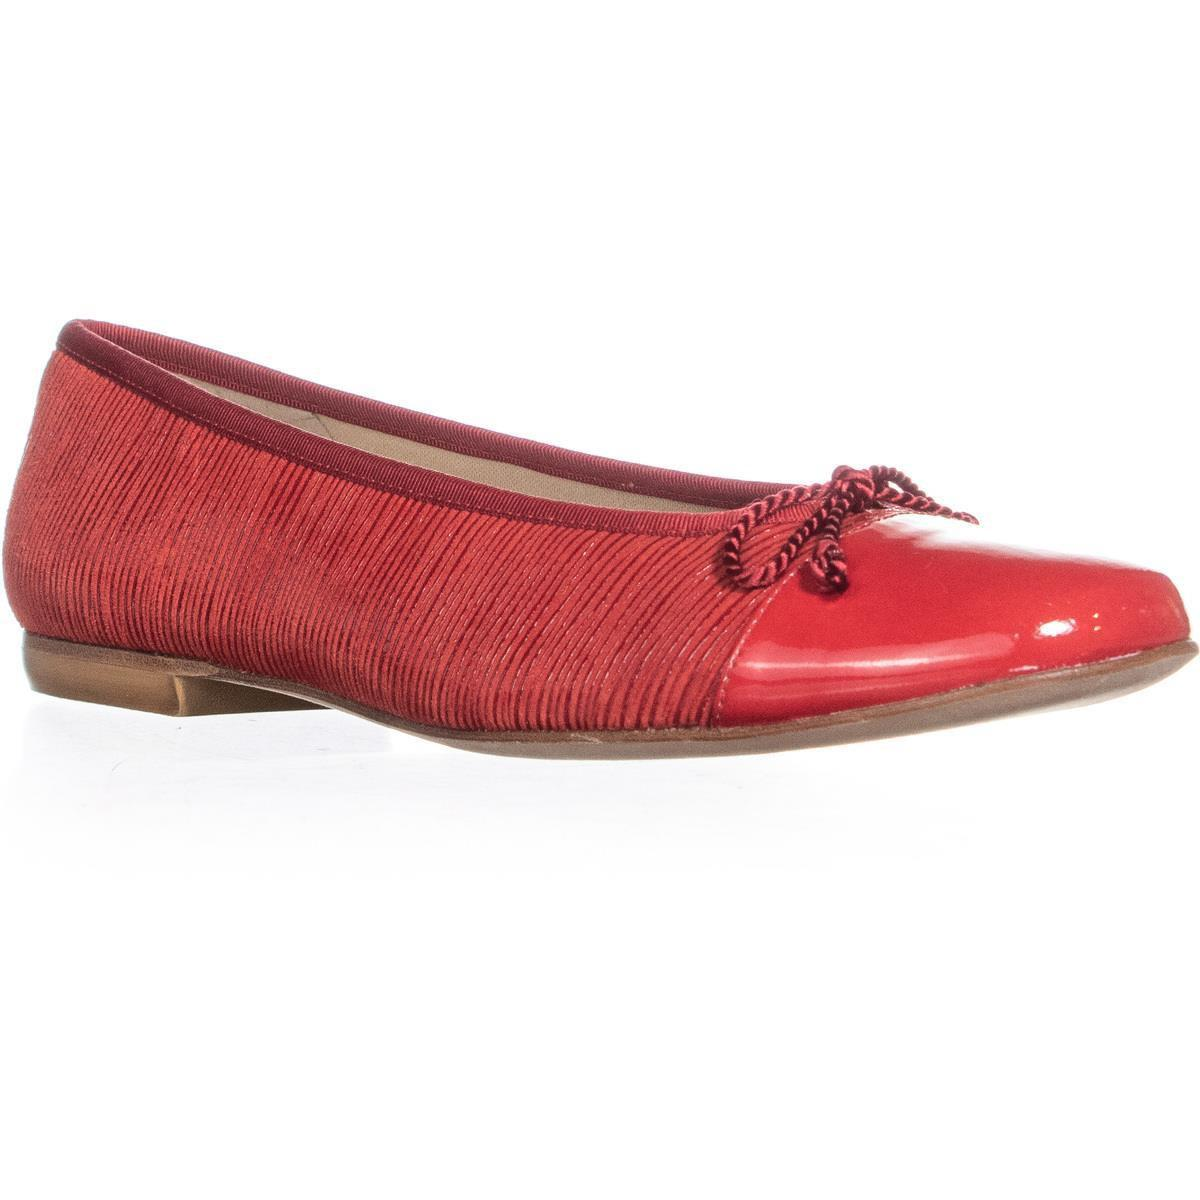 ae8c6e3057d0d Lyst - French Sole New York Quest Bow Tie Ballet Flats in Red